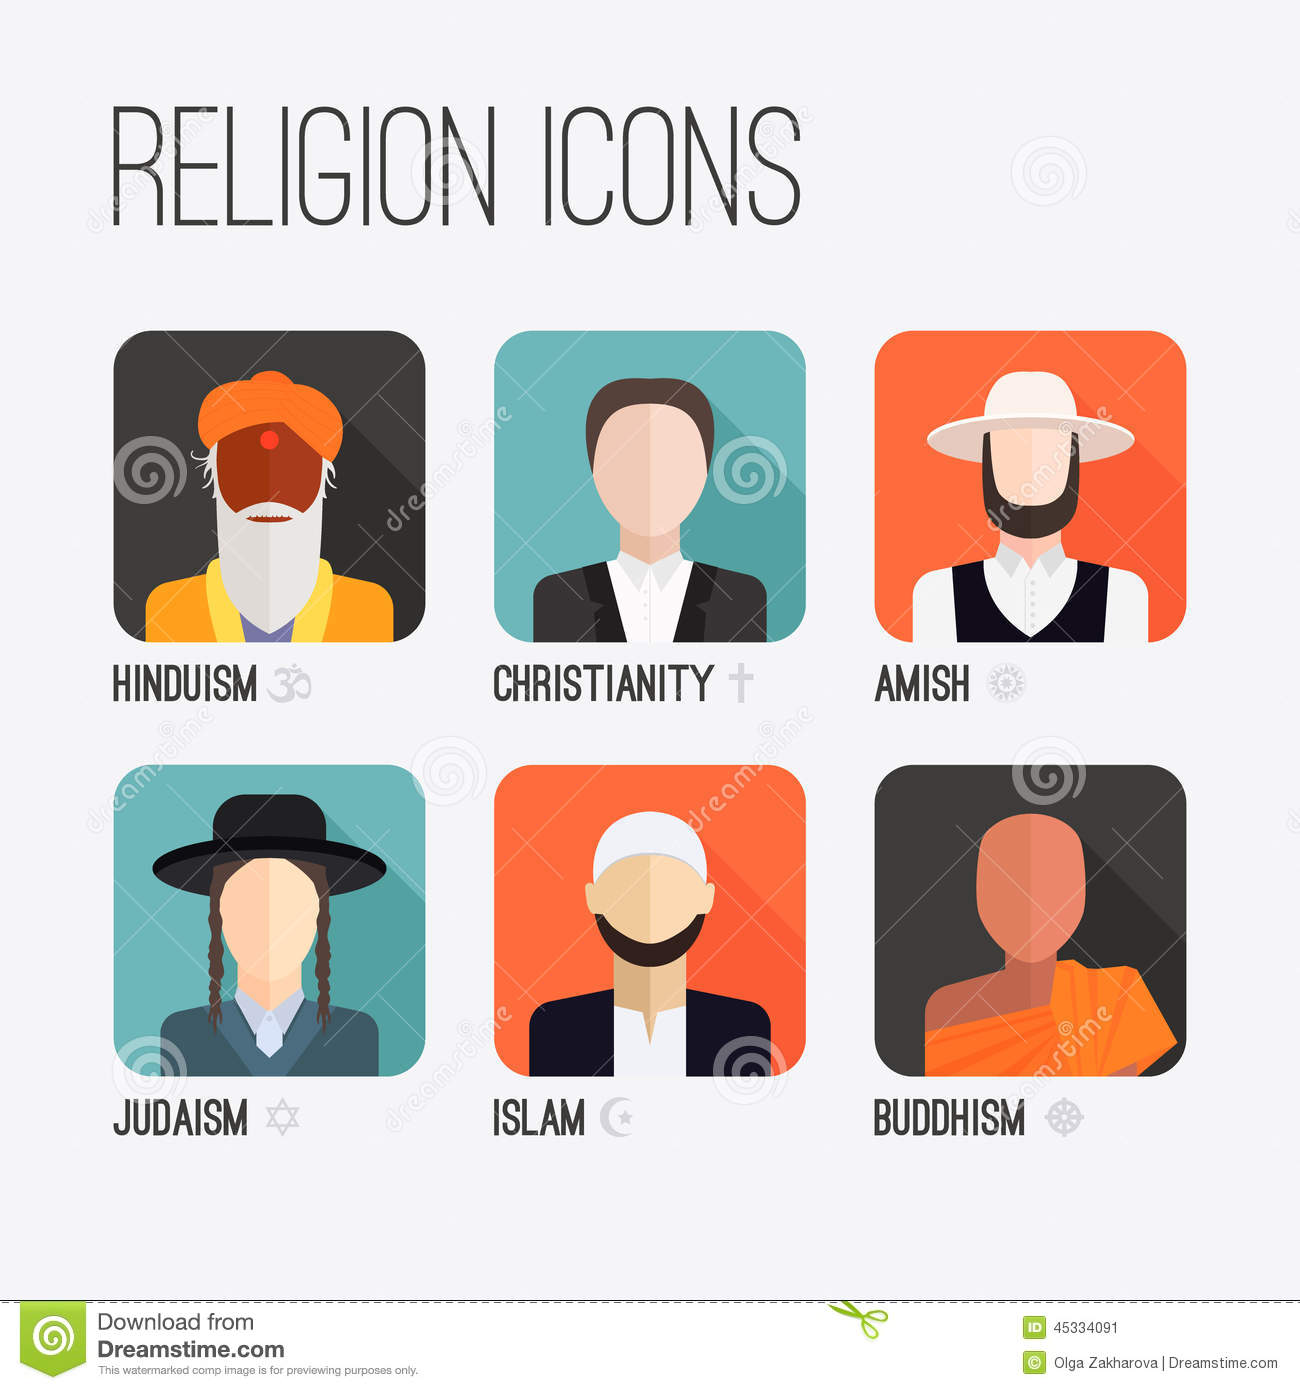 Religion Of People In The World Cliparts Stock Vector.